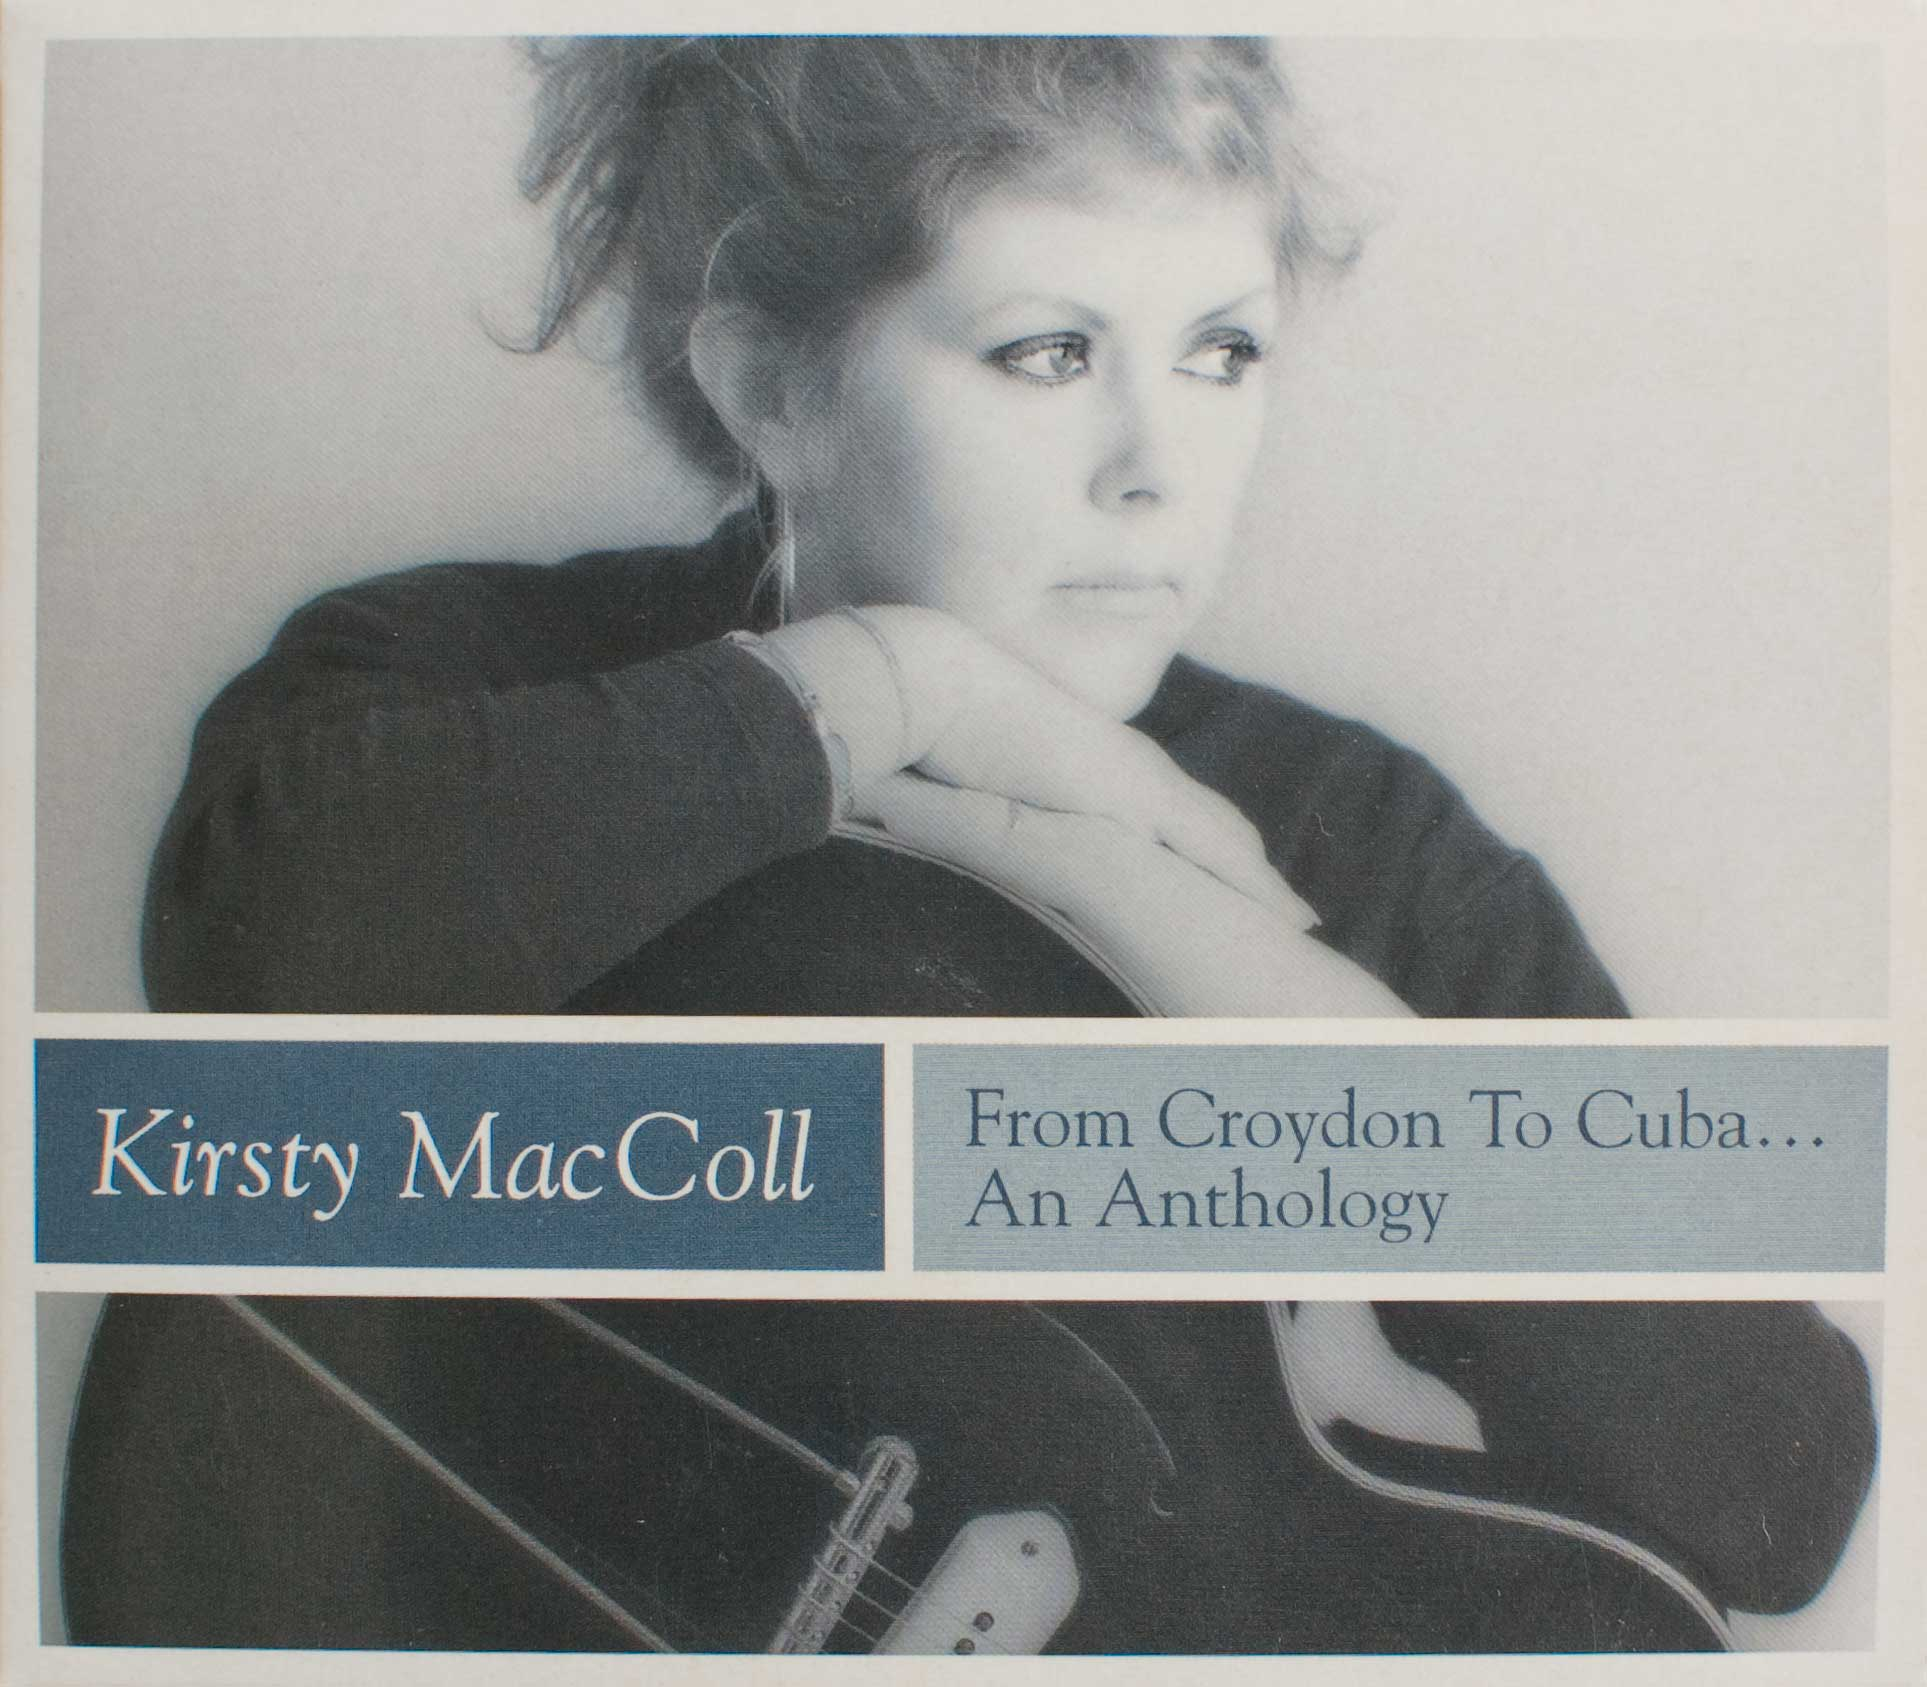 From Croydon to Cuba - An Anthology (2005 CD Box Set) front cover